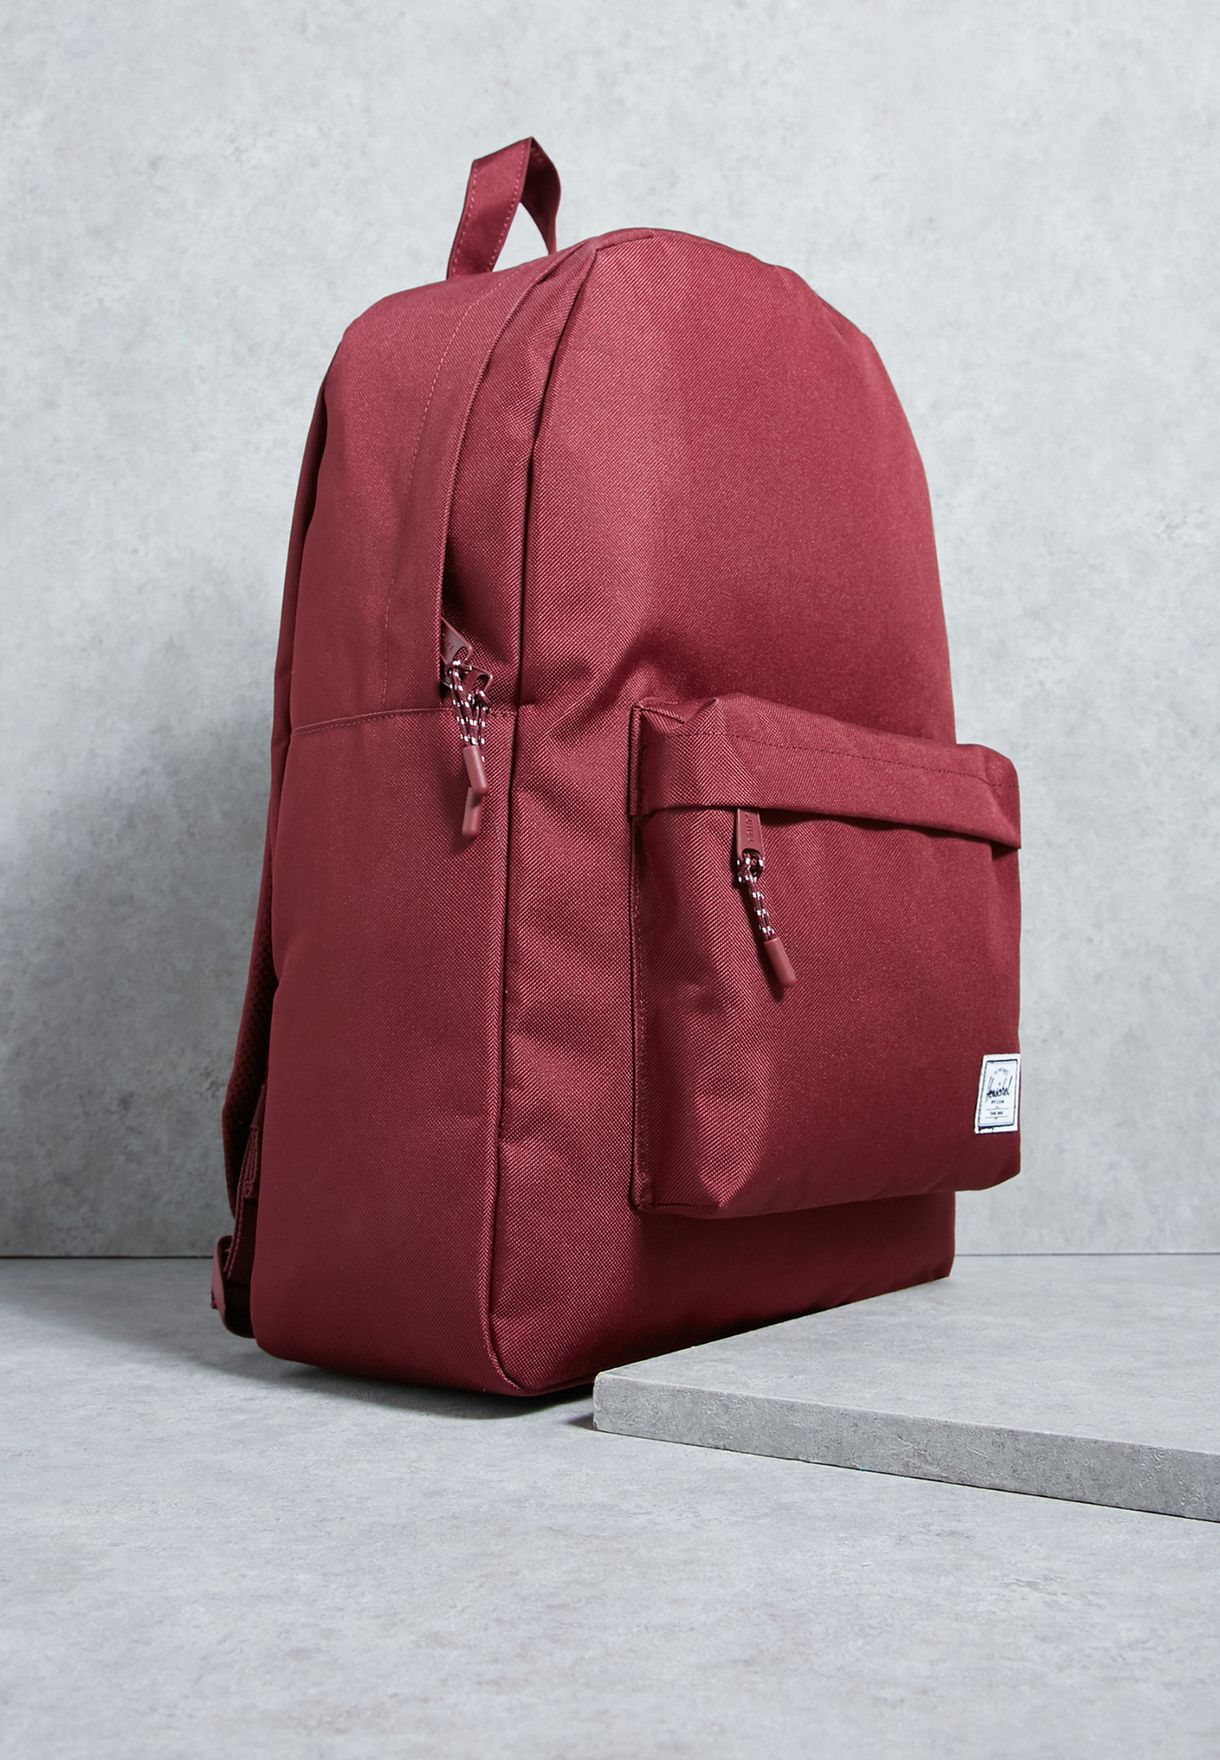 bbfca2ad7 Shop Herschel red Classic Backpack 10001-00746-OS for Women in ...